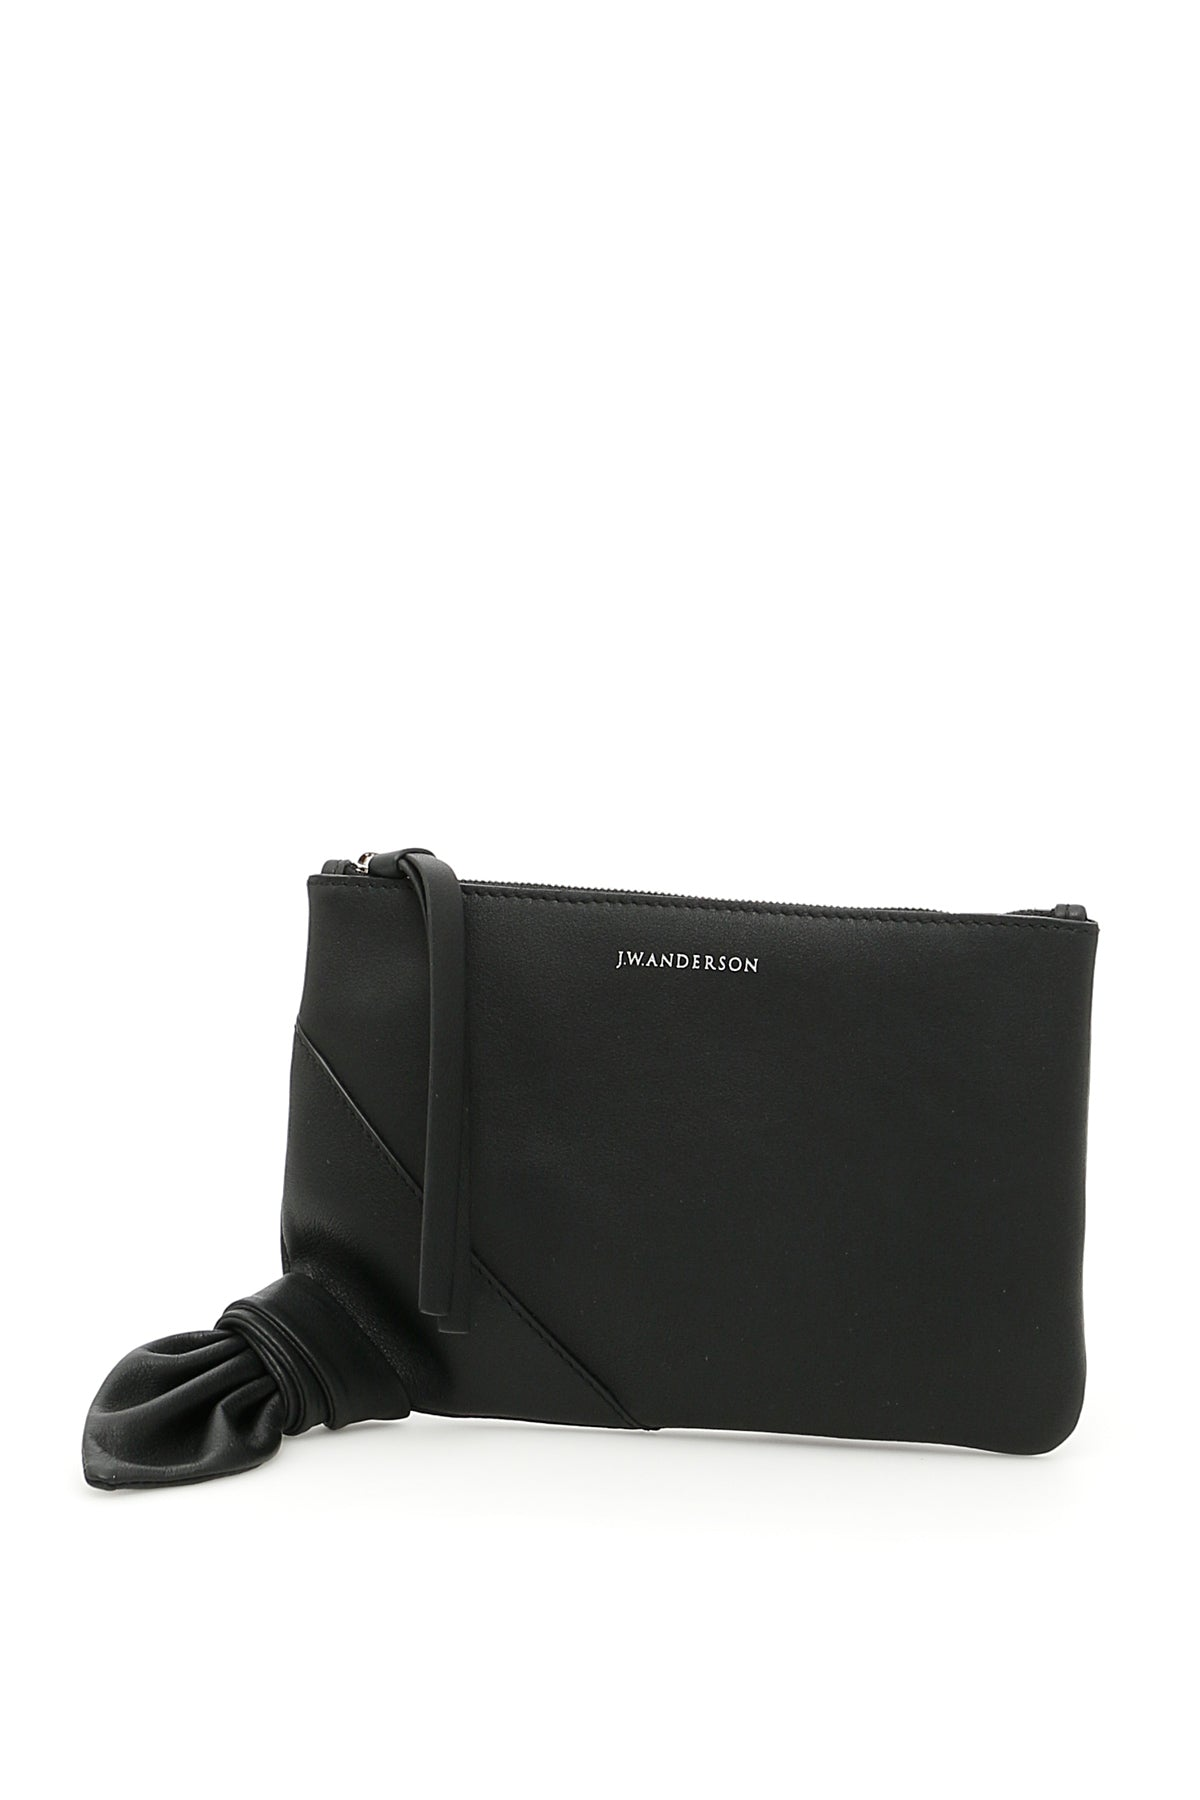 JW ANDERSON KNOT POUCH